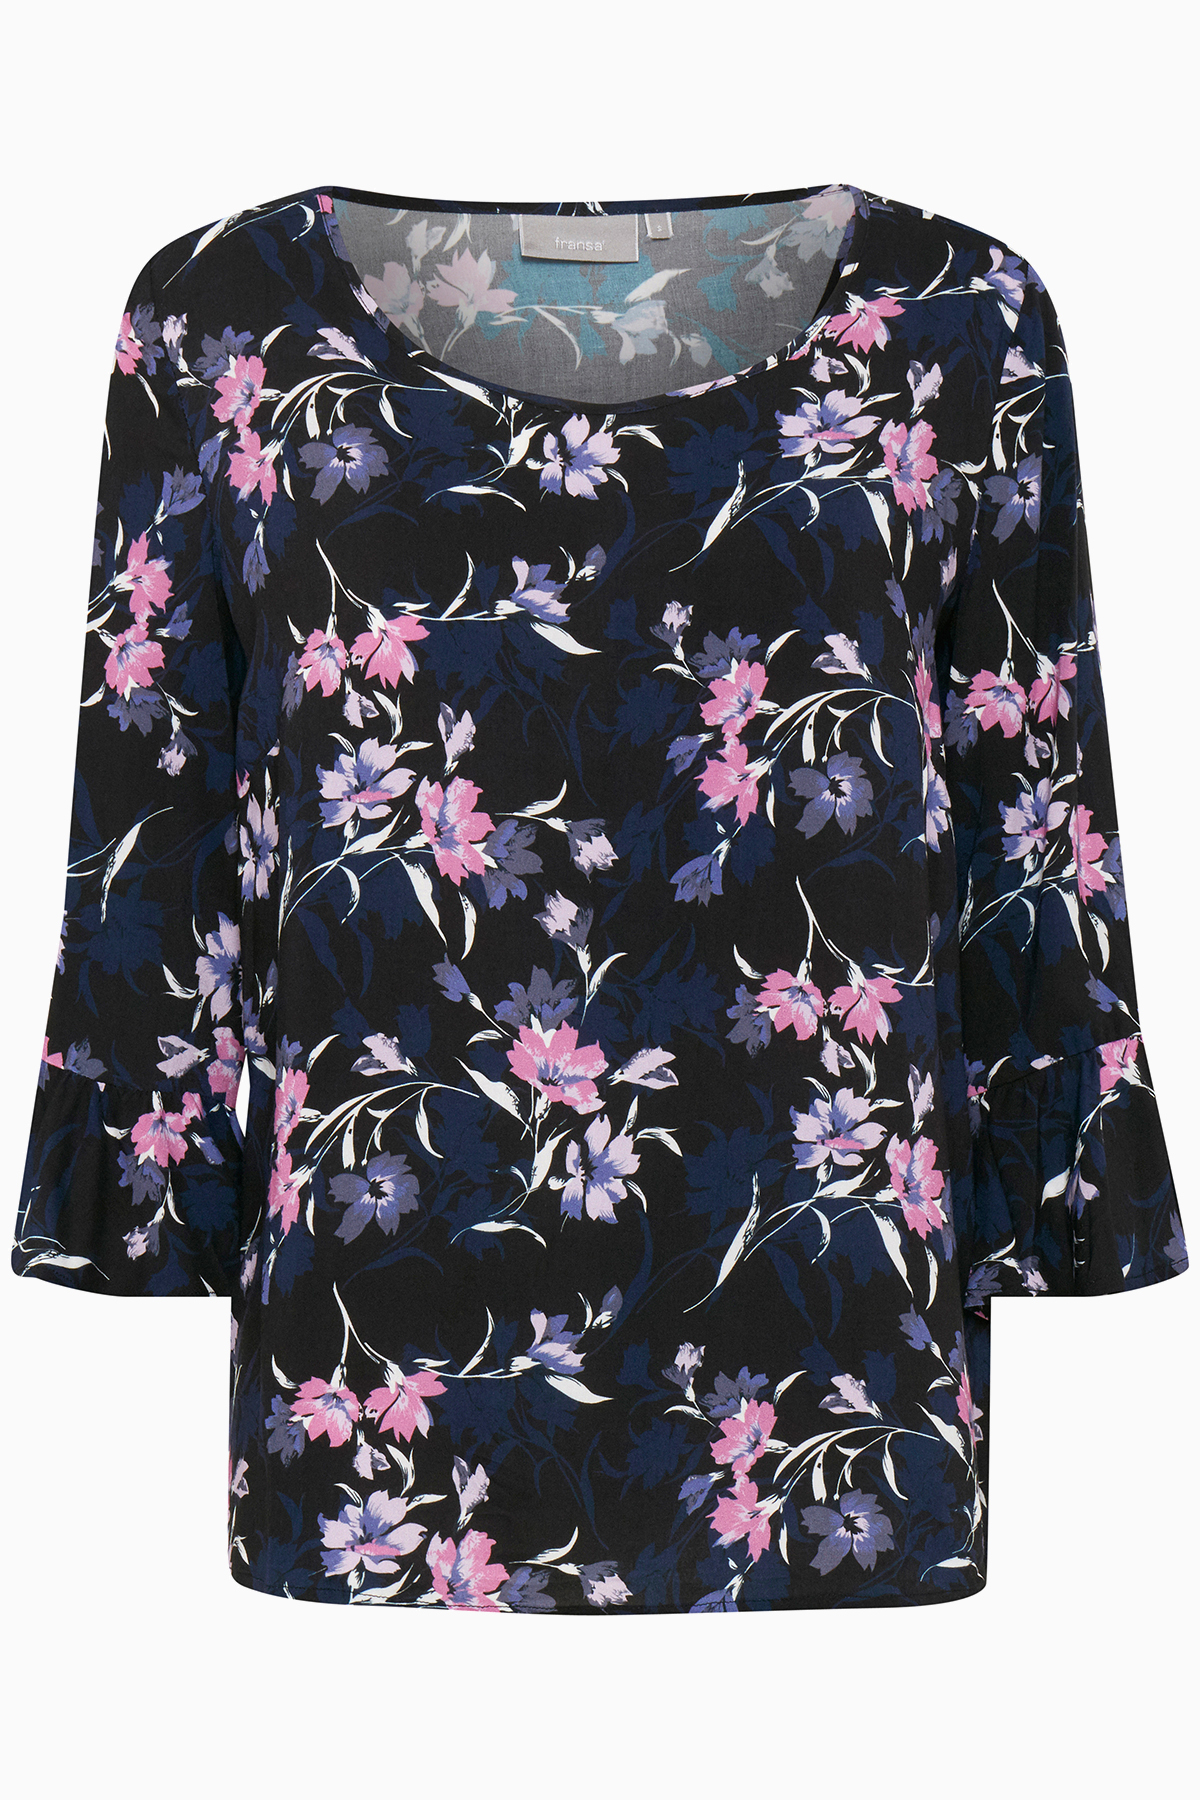 Image of Fransa Dame Super fin Nashadow bluse - Sort/rosa